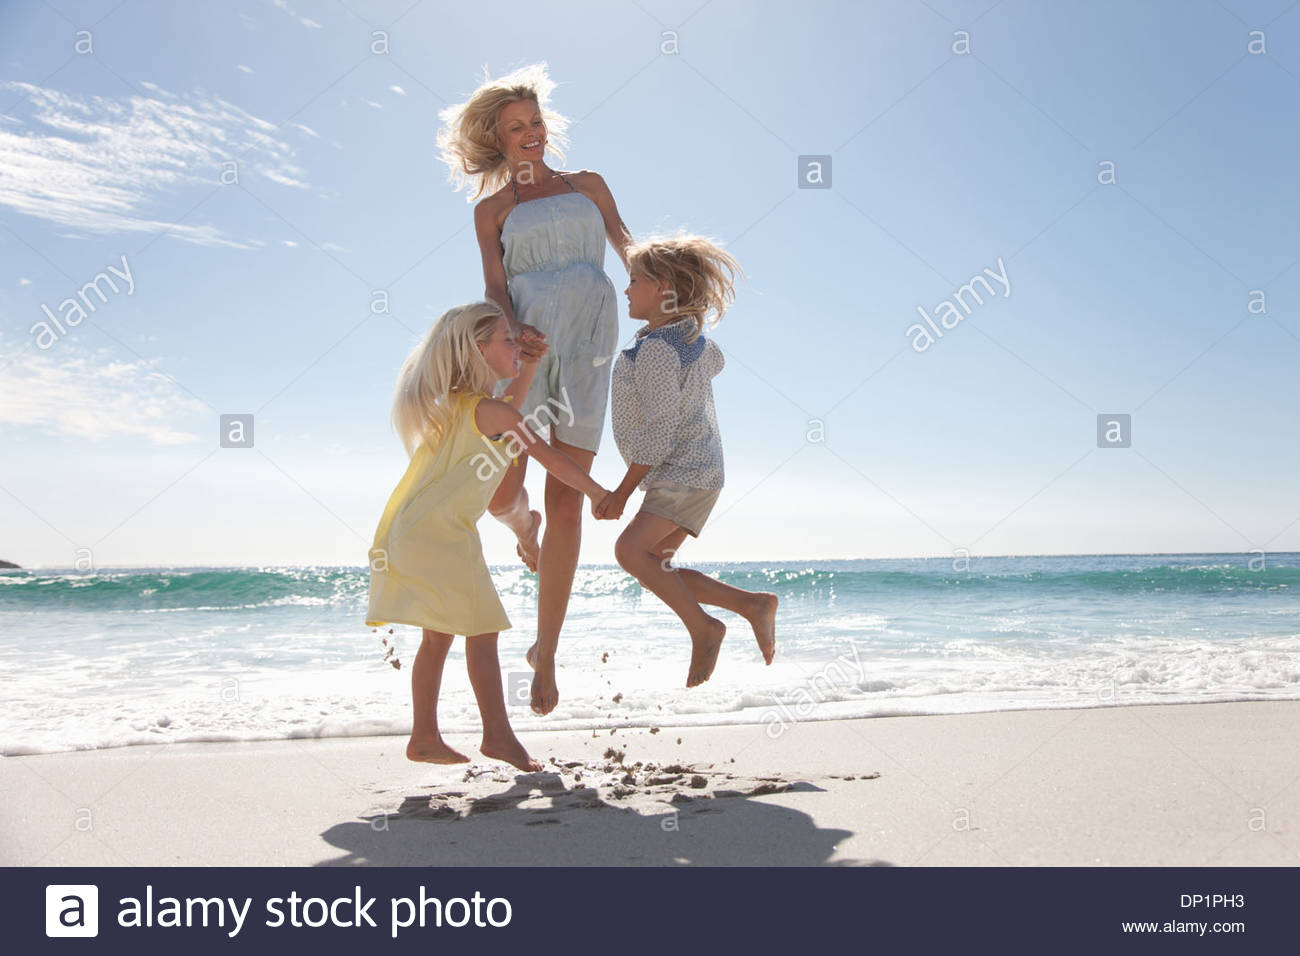 Family playing on beach - Stock Image